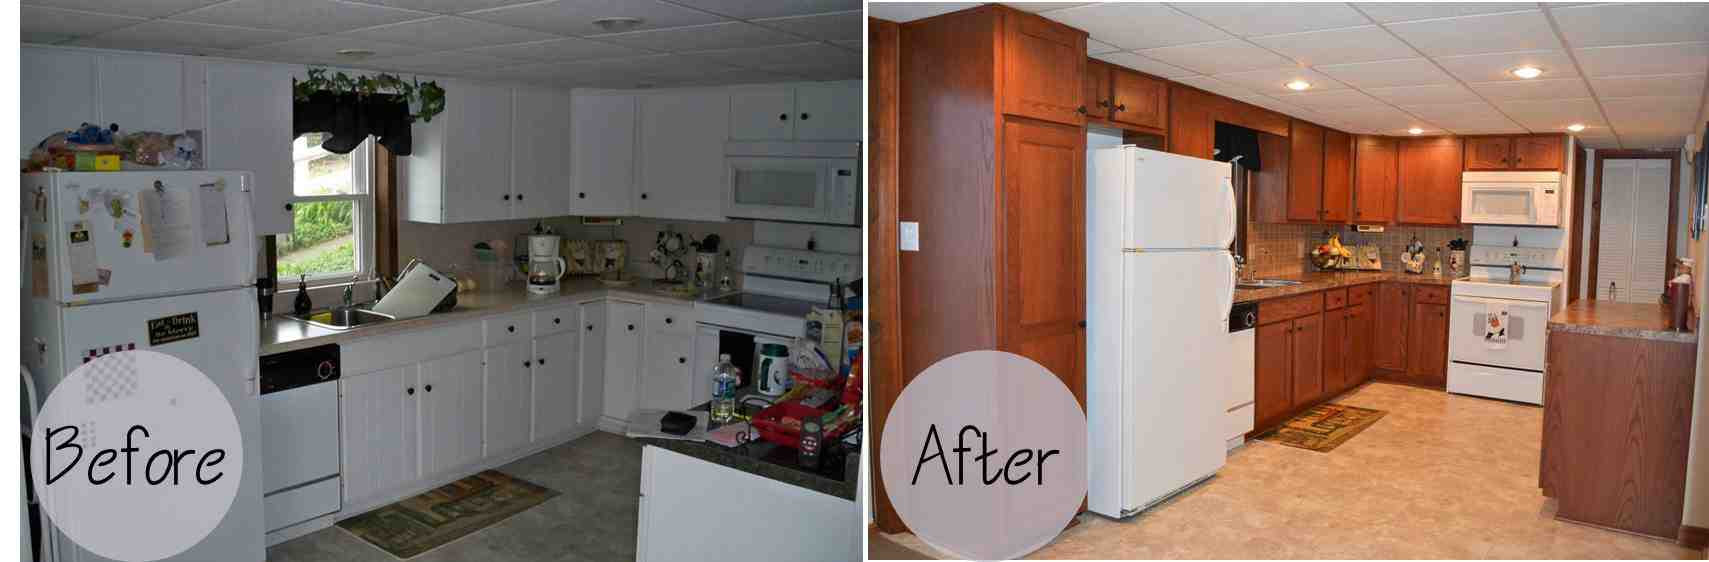 Kitchen Cabinet Refacing Before And After Photos - Decor ...